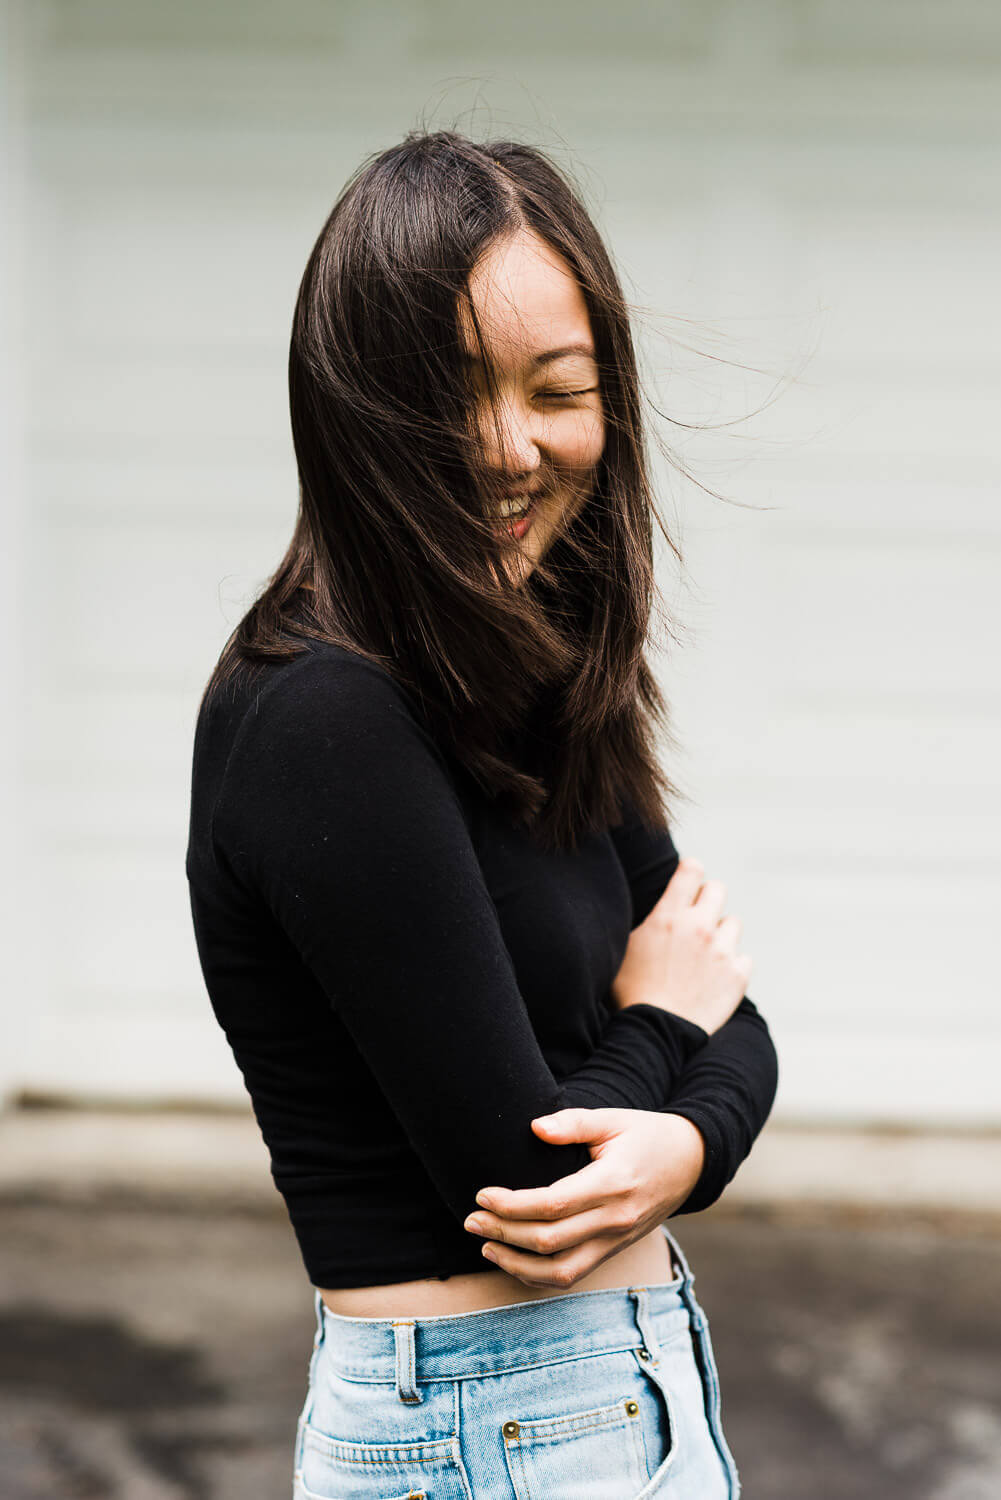 Young woman laughs as the wind blows her dark hair